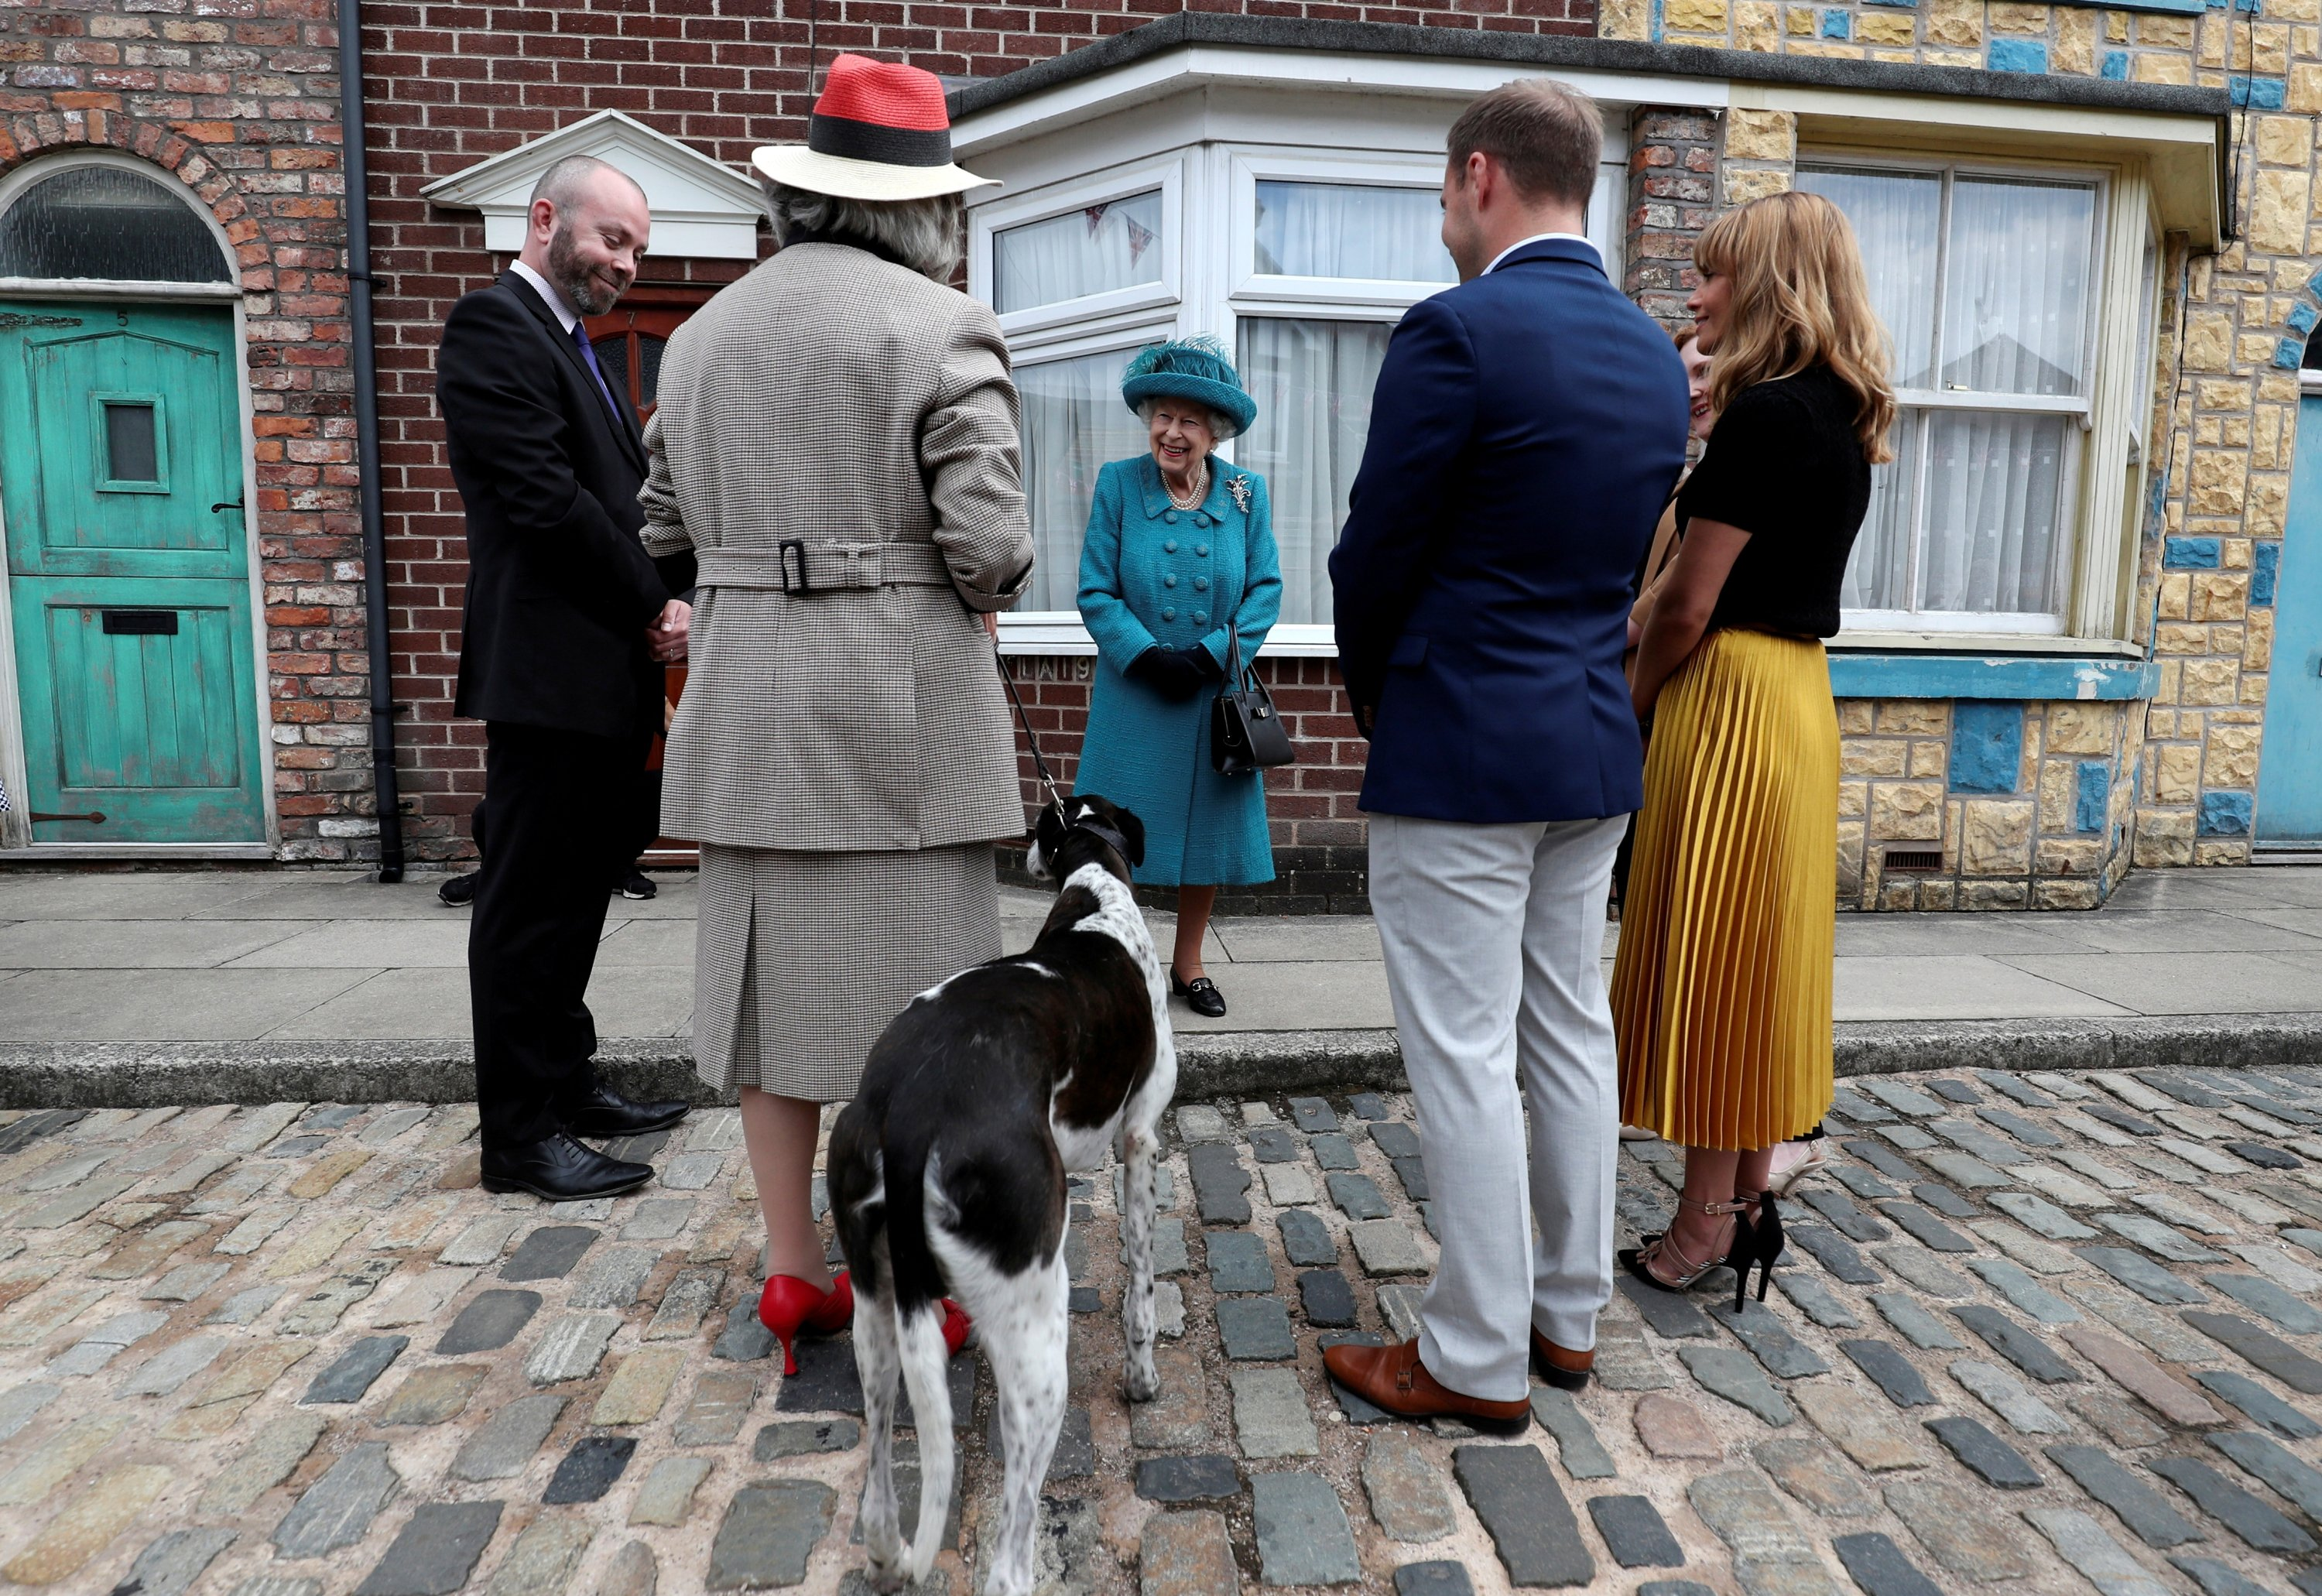 Britain's Queen Elizabeth (C) meets actors and members of the production team during a visit to the set of the long-running television series 'Coronation Street,' in Manchester, Britain, July 8, 2021. (Pool Photo via Reuters)